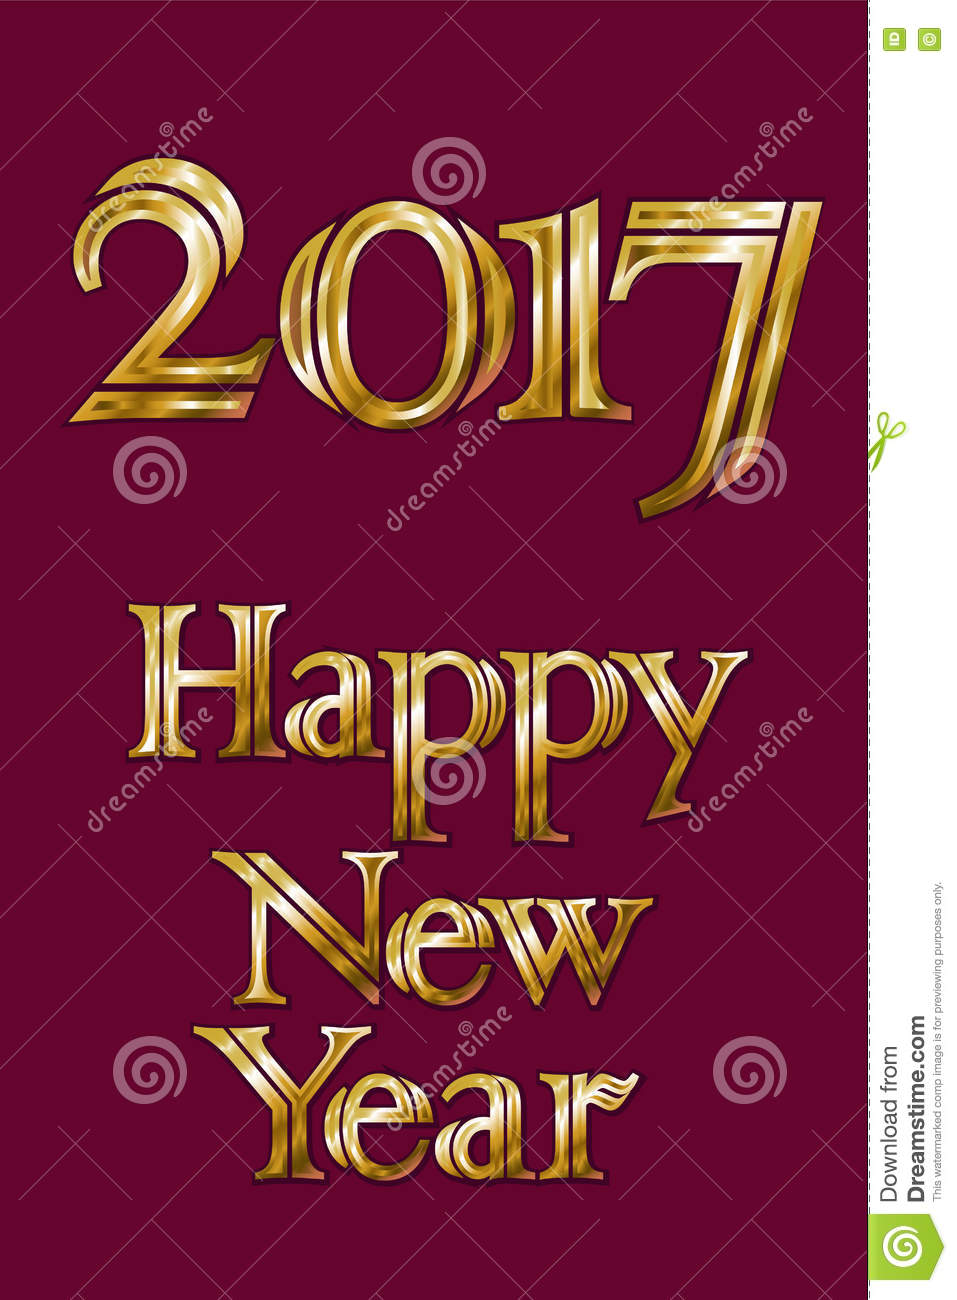 Golden new year 2017 greeting card magic sparkle vector gold golden new year 2017 greeting card magic sparkle vector gold glittering textured art color drawing kristyandbryce Images